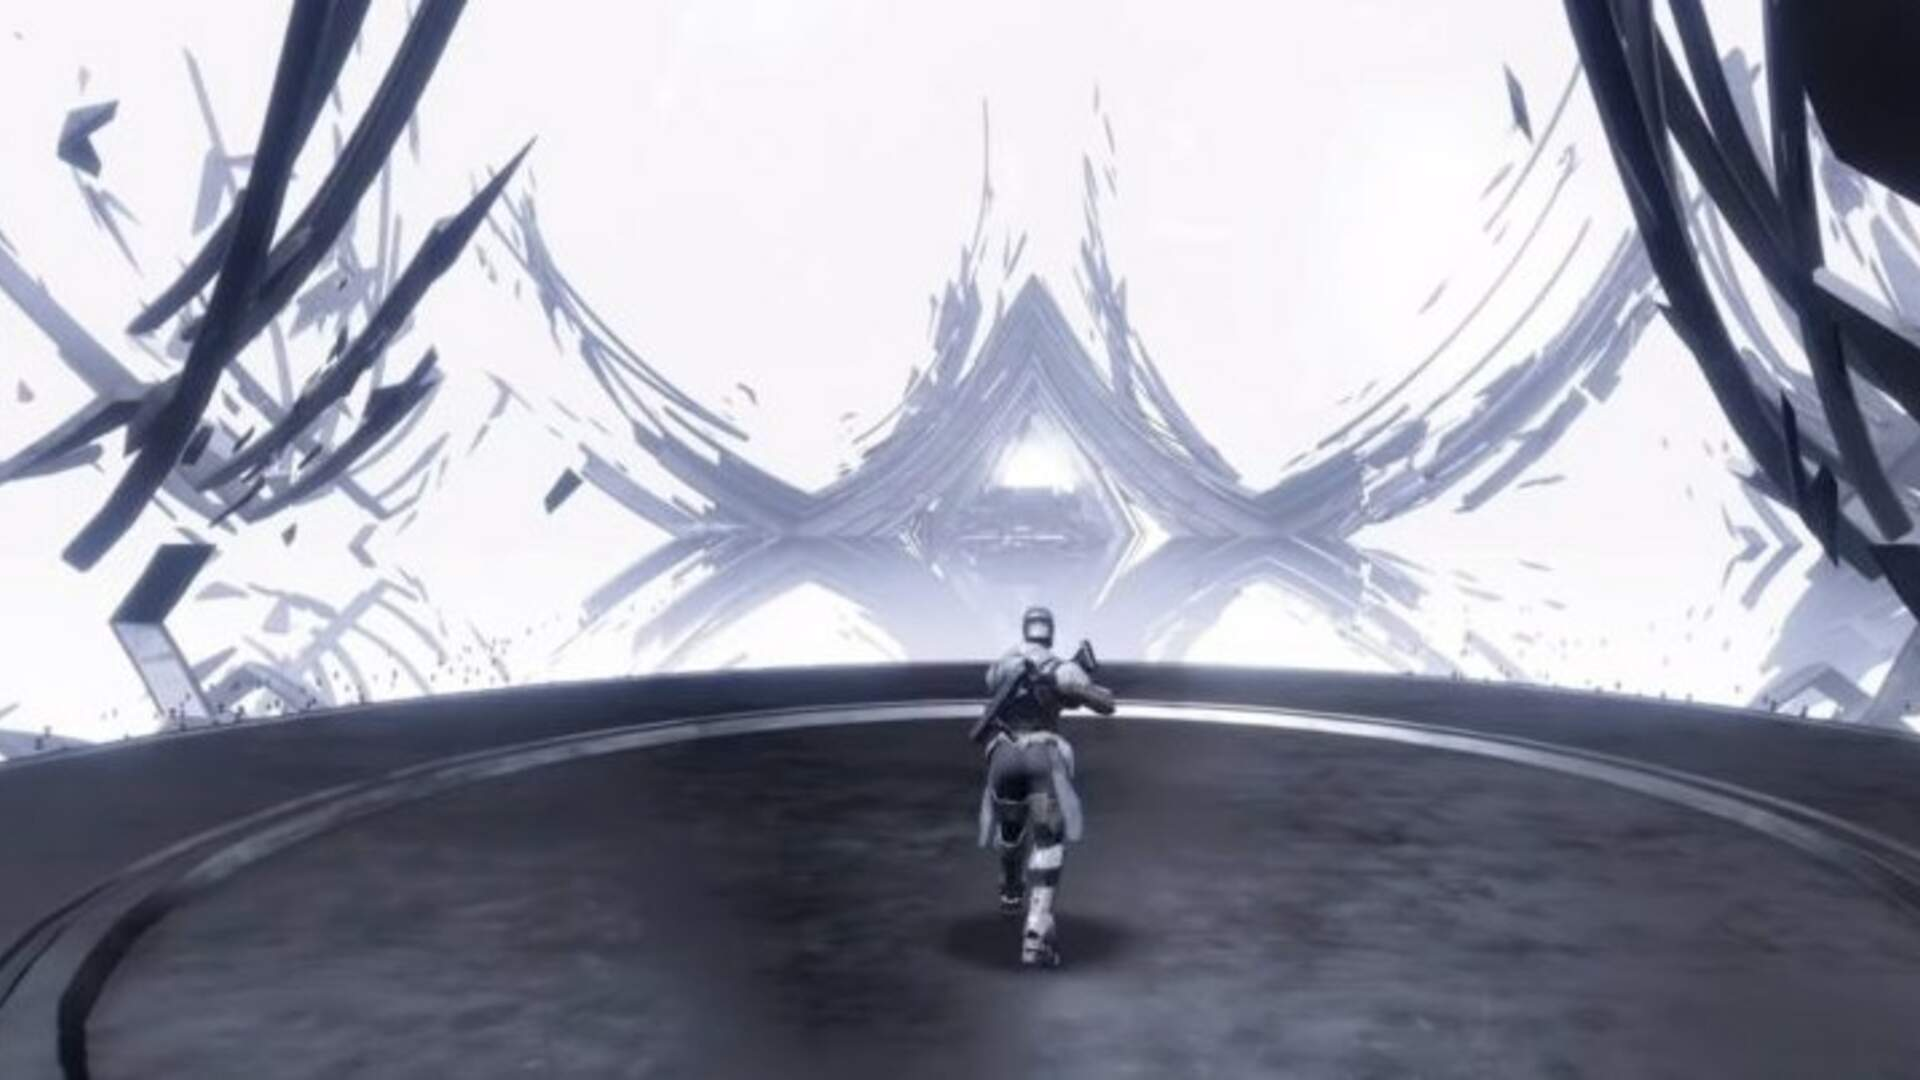 After Nearly a Week, Destiny 2's Corridors of Time Puzzle Has Been Solved